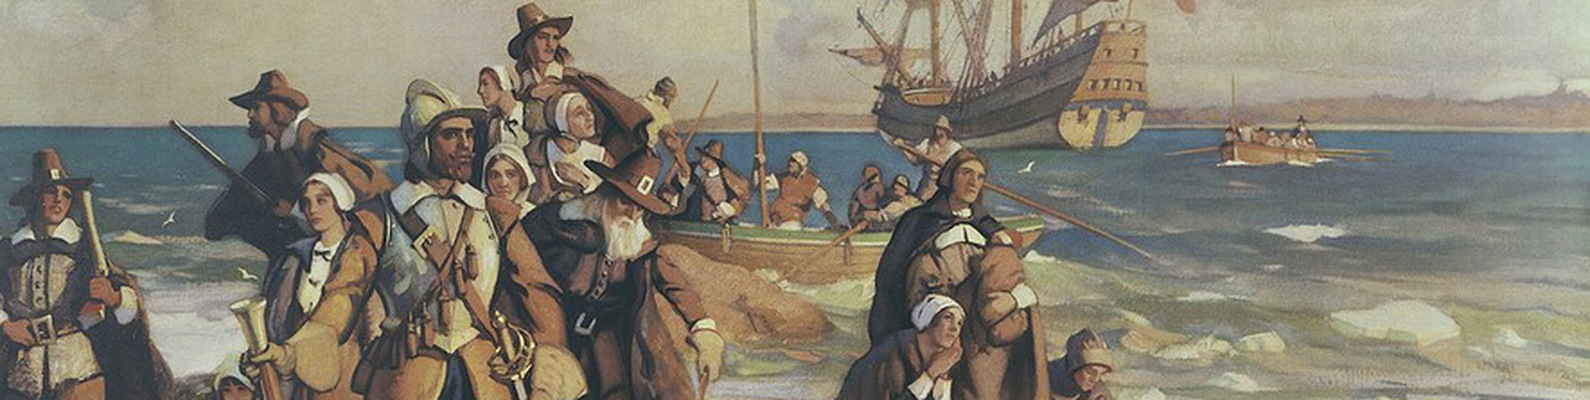 an introduction to the history of jamestown and plymouth in the united states of america Plymouth colony: history  the settlement of jamestown colony related study materials prentice hall united states history:.